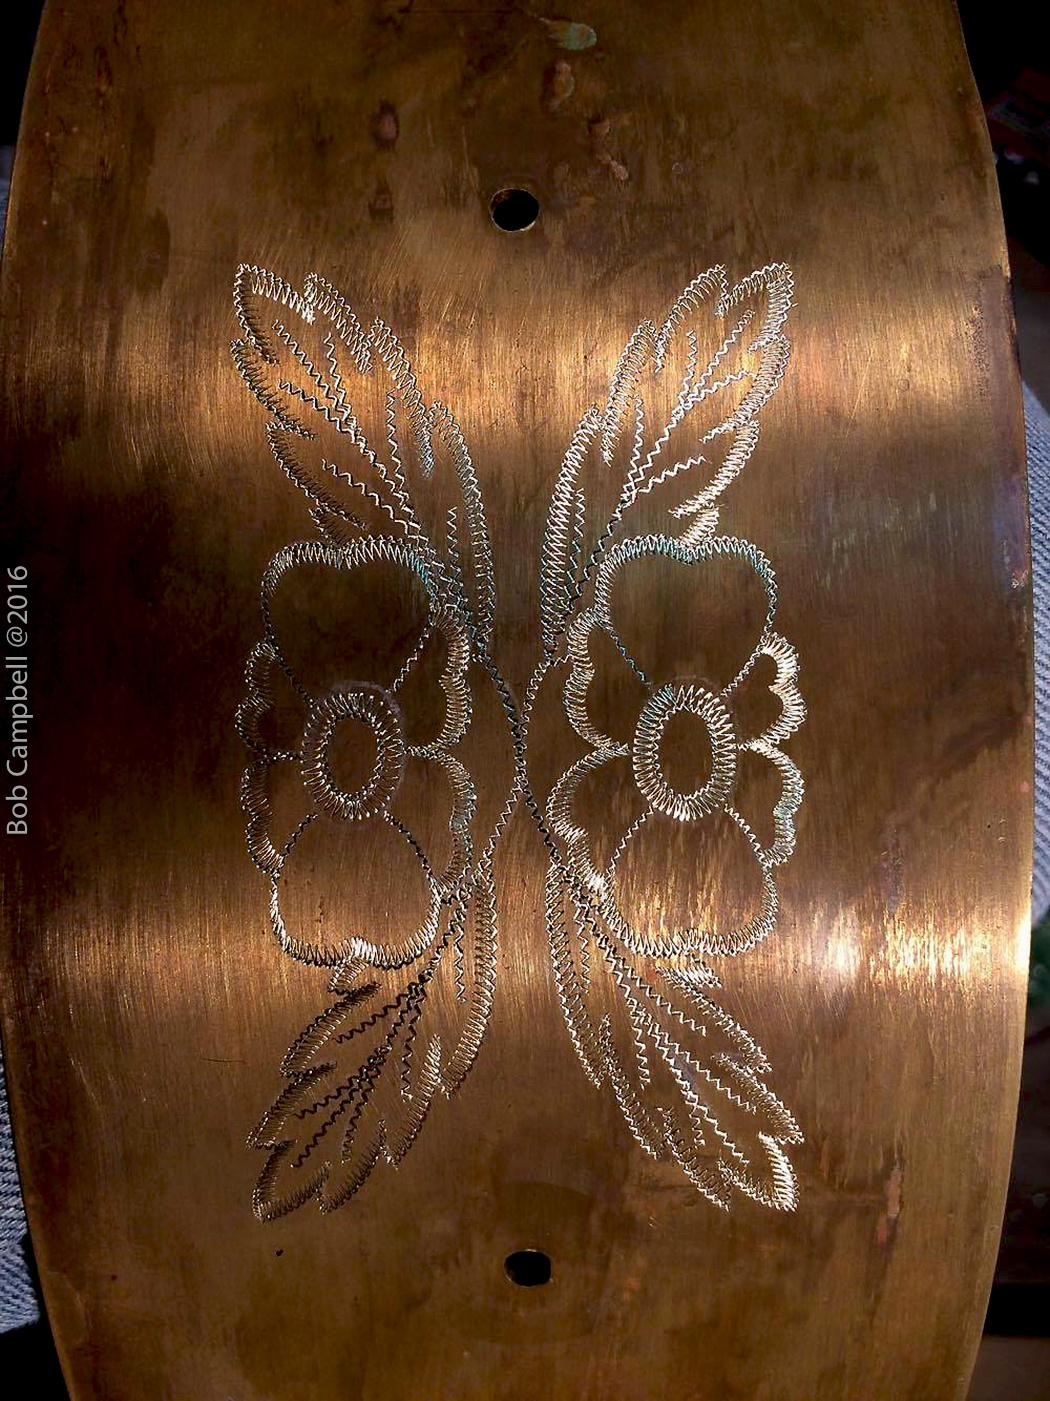 10b. AF_Snare_Shell_engraved panel_compare_wm.jpg